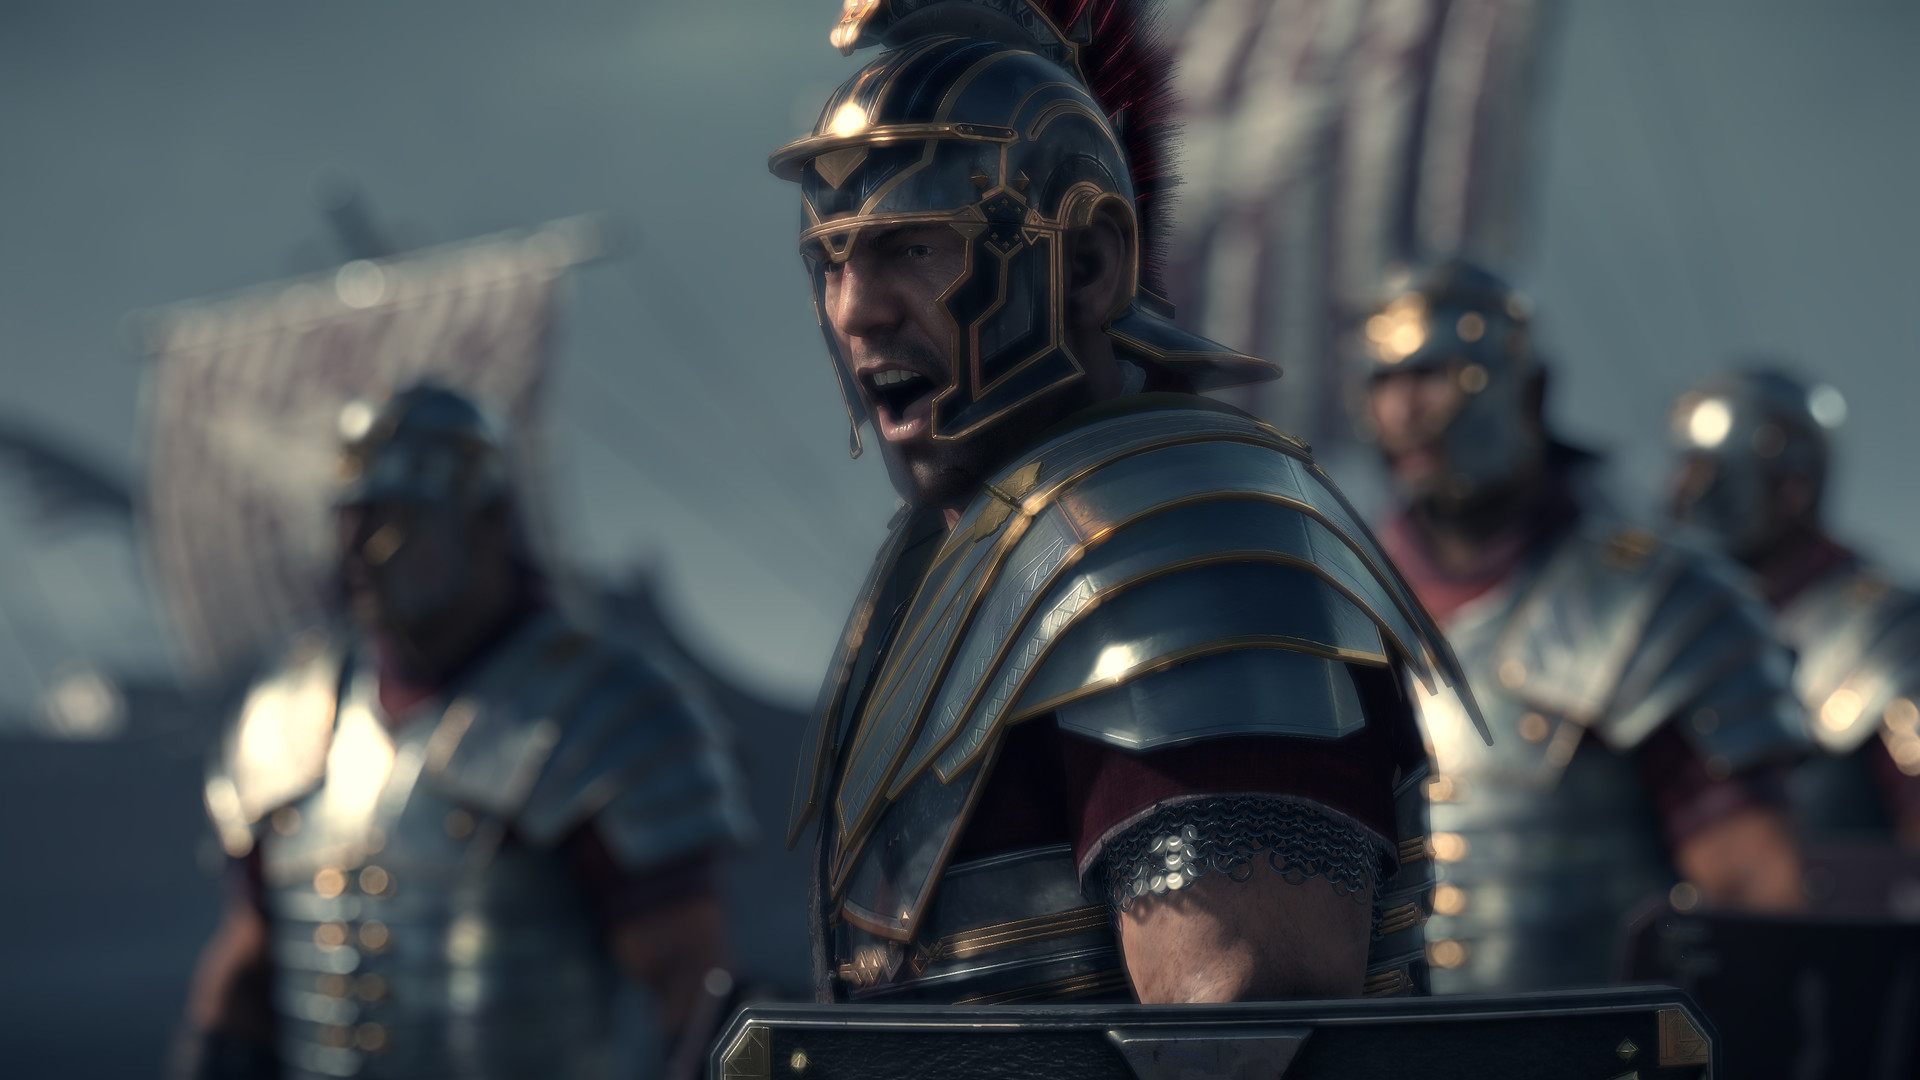 Ryse Son Of Rome Wallpaper: Ryse: Son Of Rome Computer Wallpapers, Desktop Backgrounds